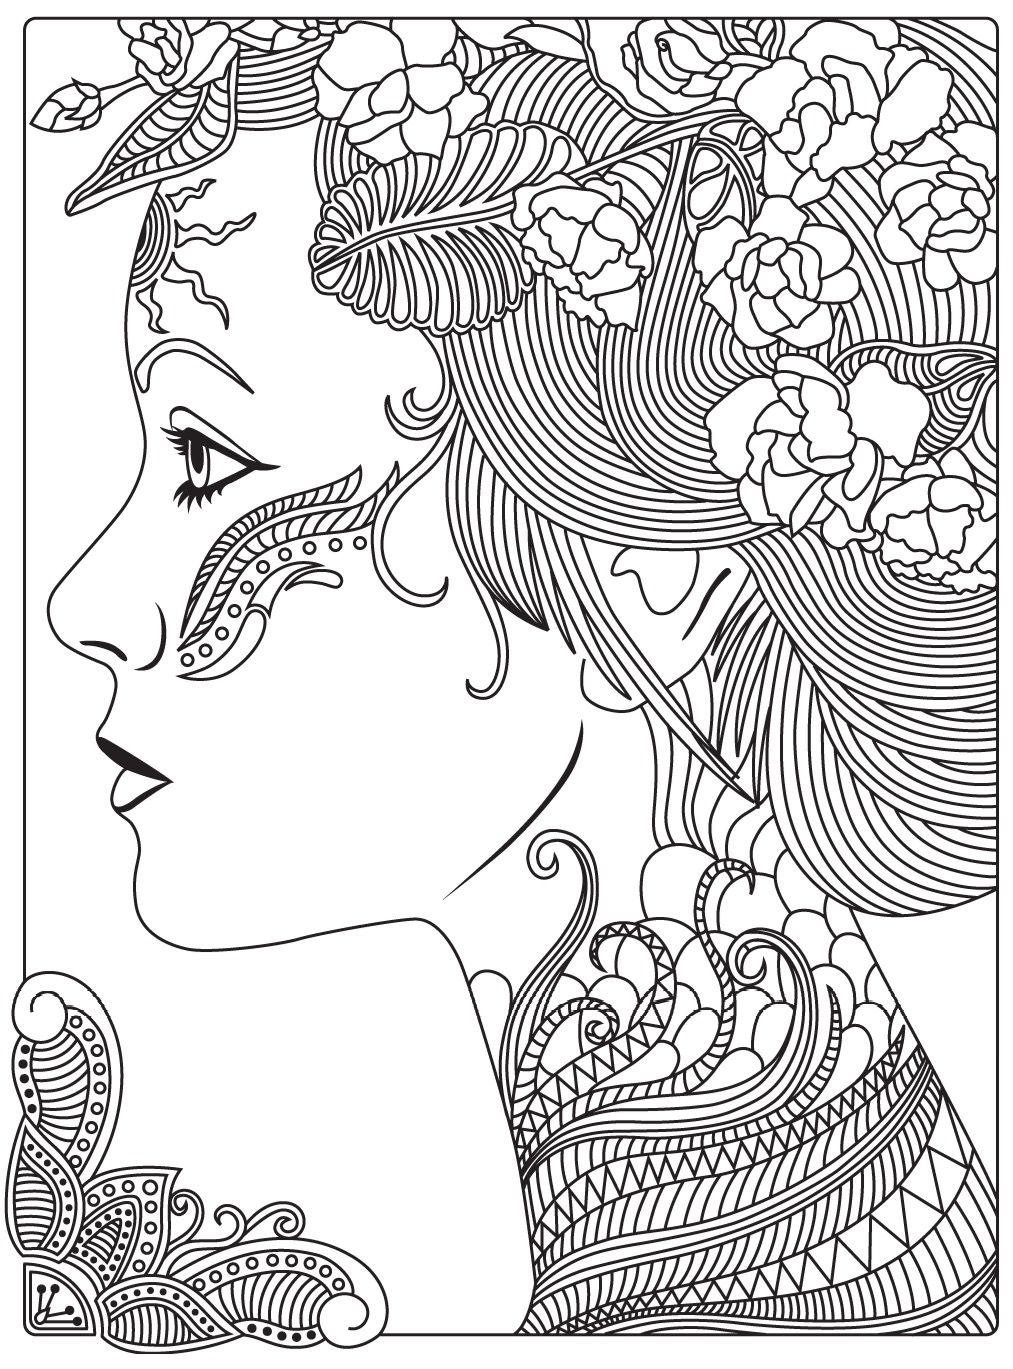 Women Colorish Coloring Book App For Adults Mandala Relax By